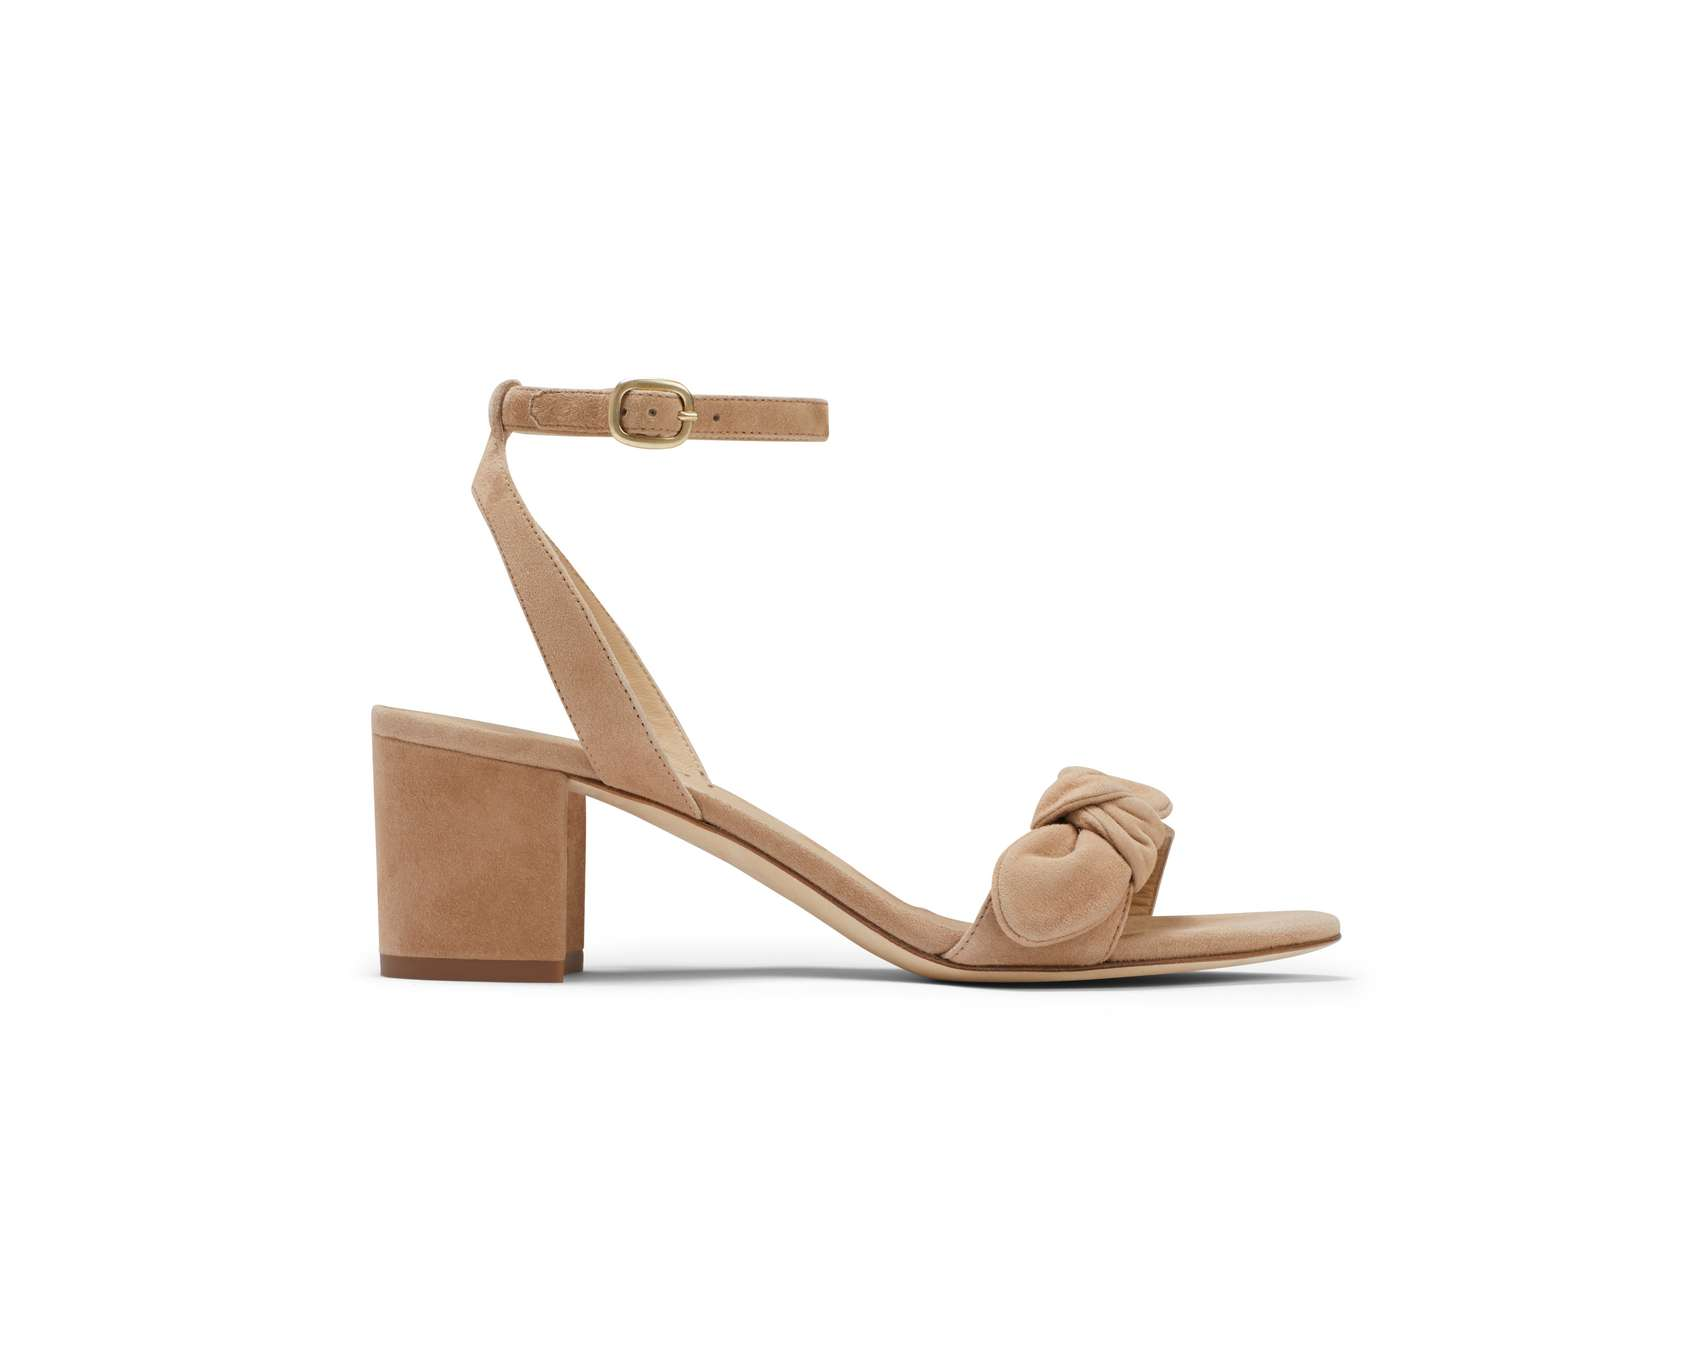 Strappy block heeled wedding shoes by M. Gemi.